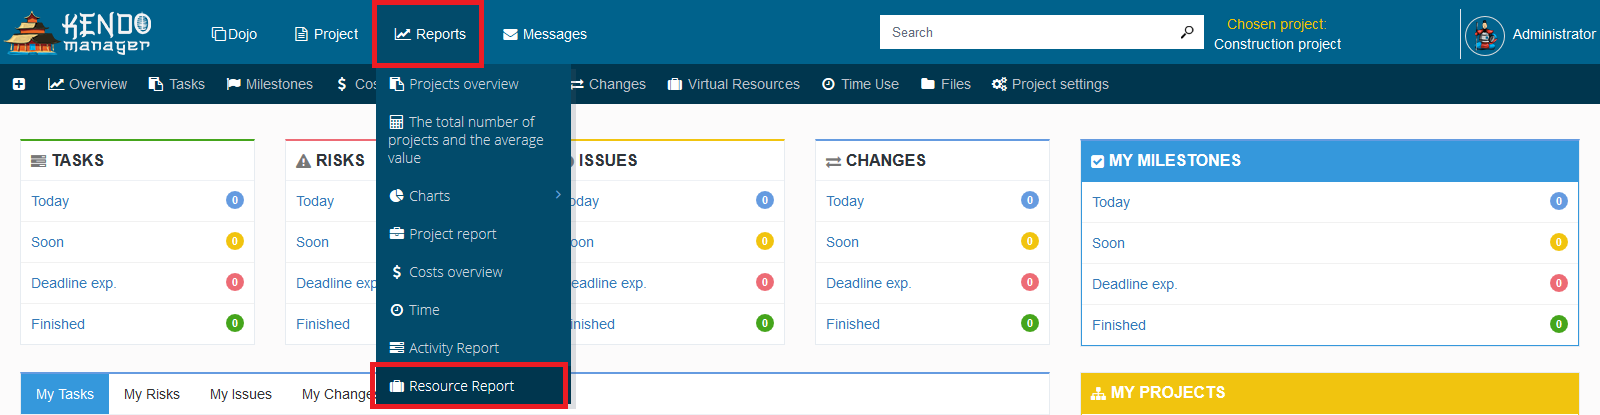 Resources reports